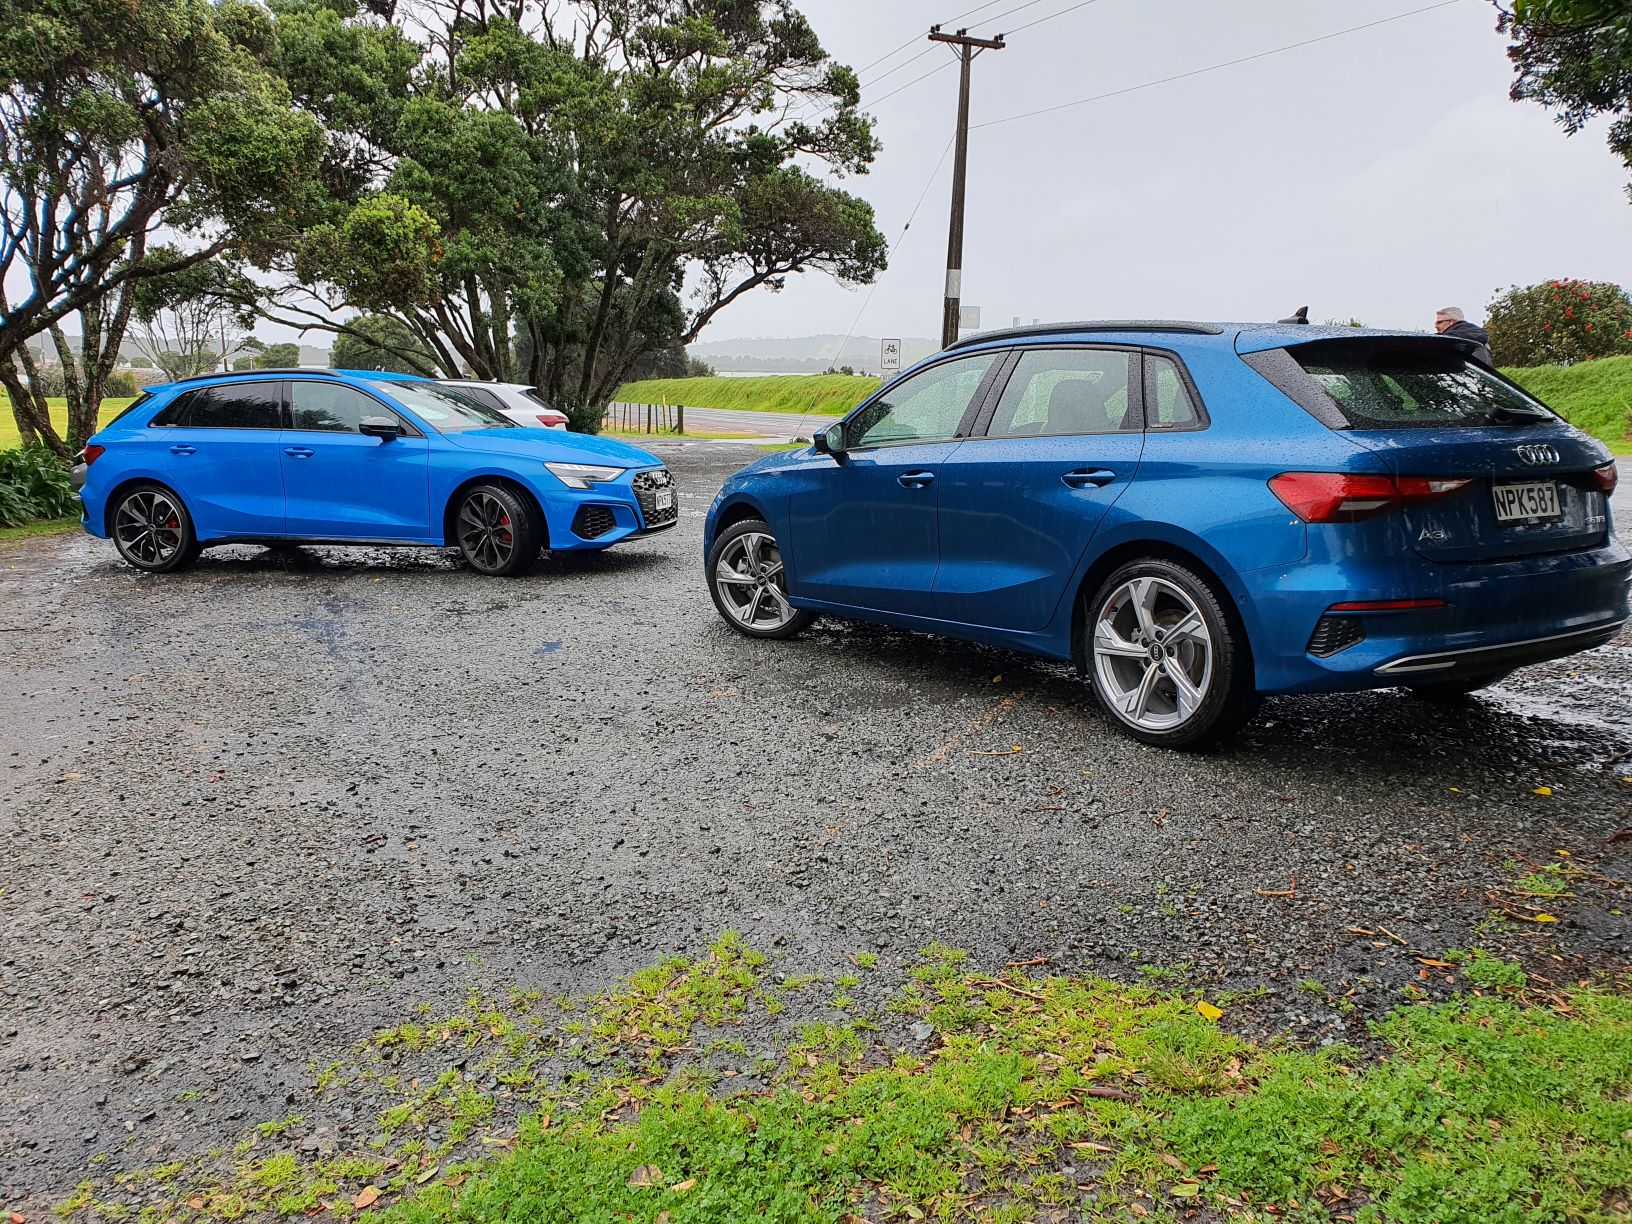 Audi's new A3 and S3 models